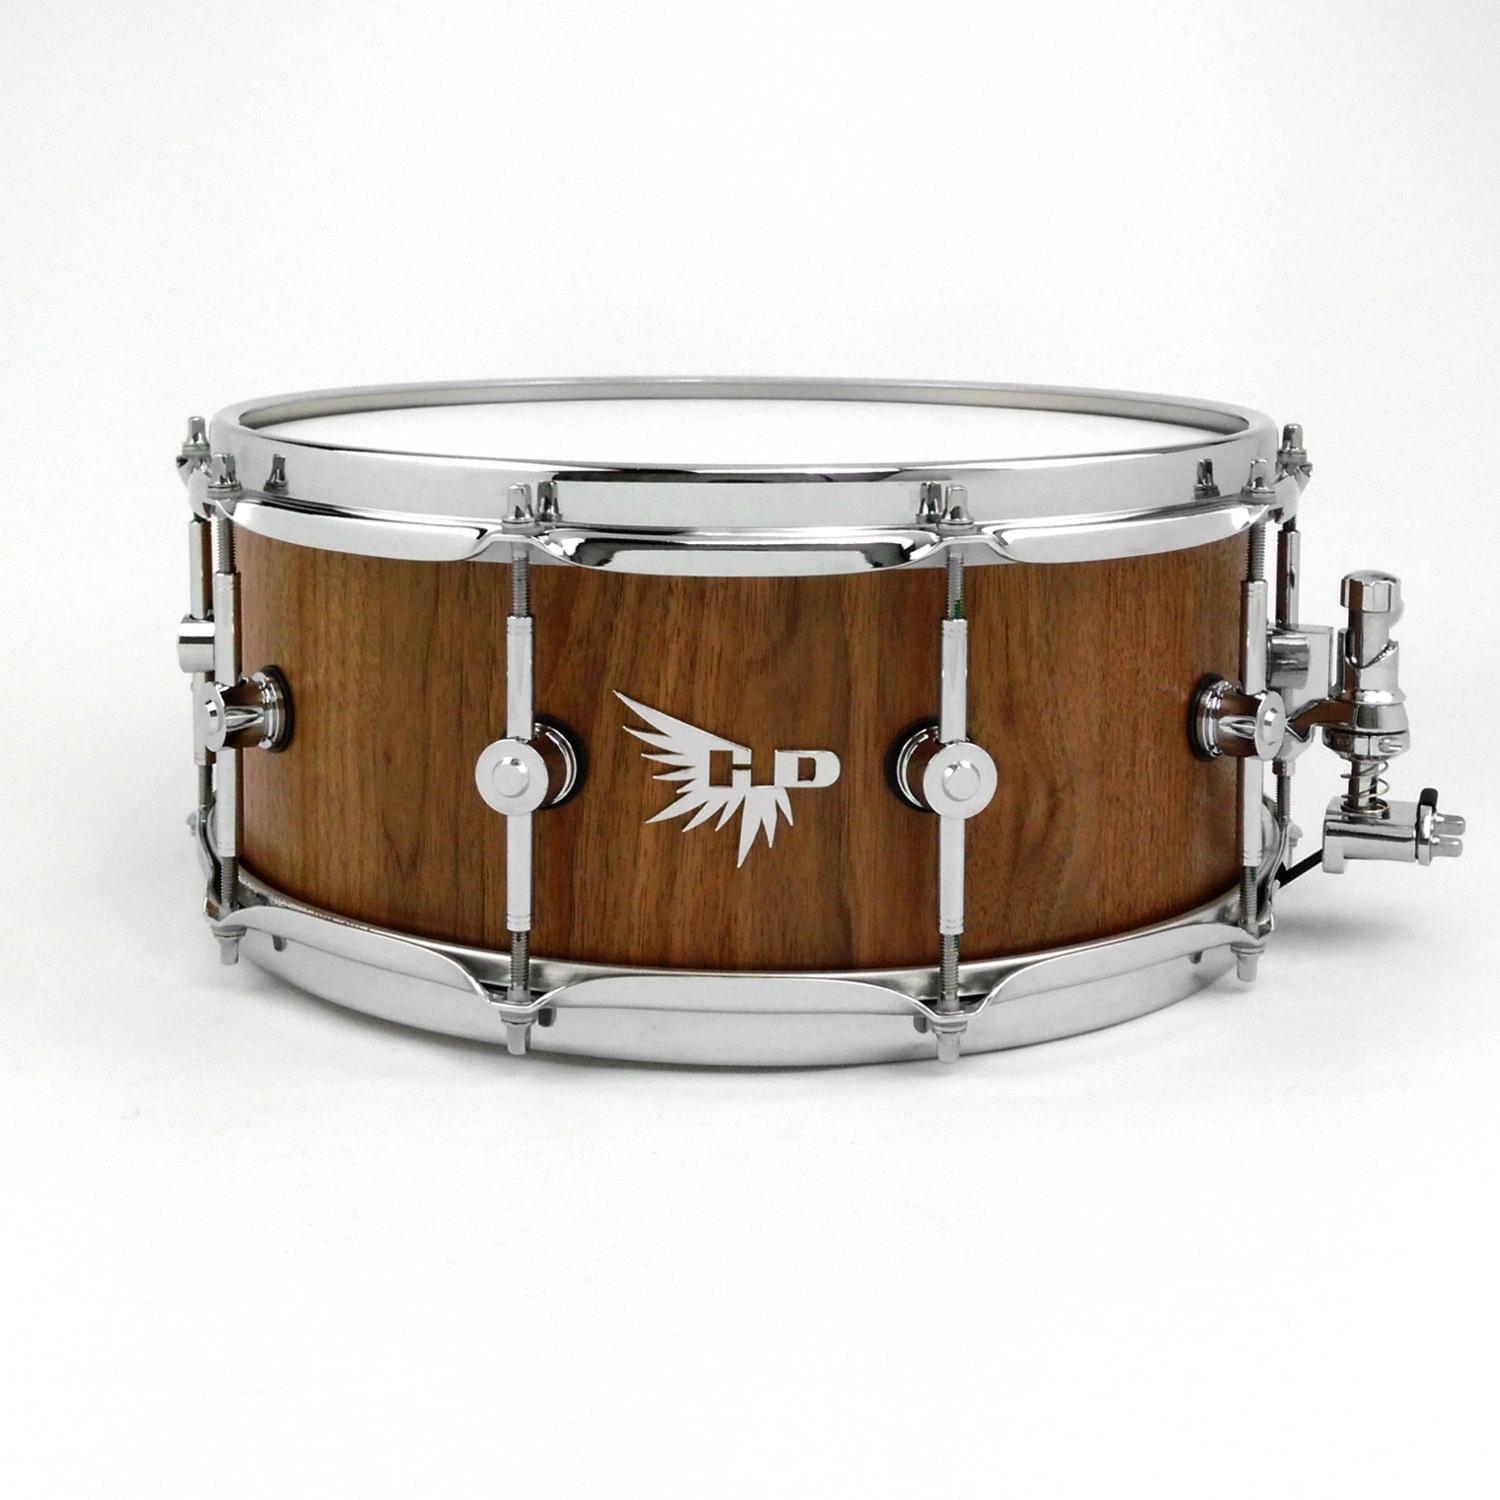 Walnut Hendrix Drums Stave Snare Tama Craviotto Brady HD